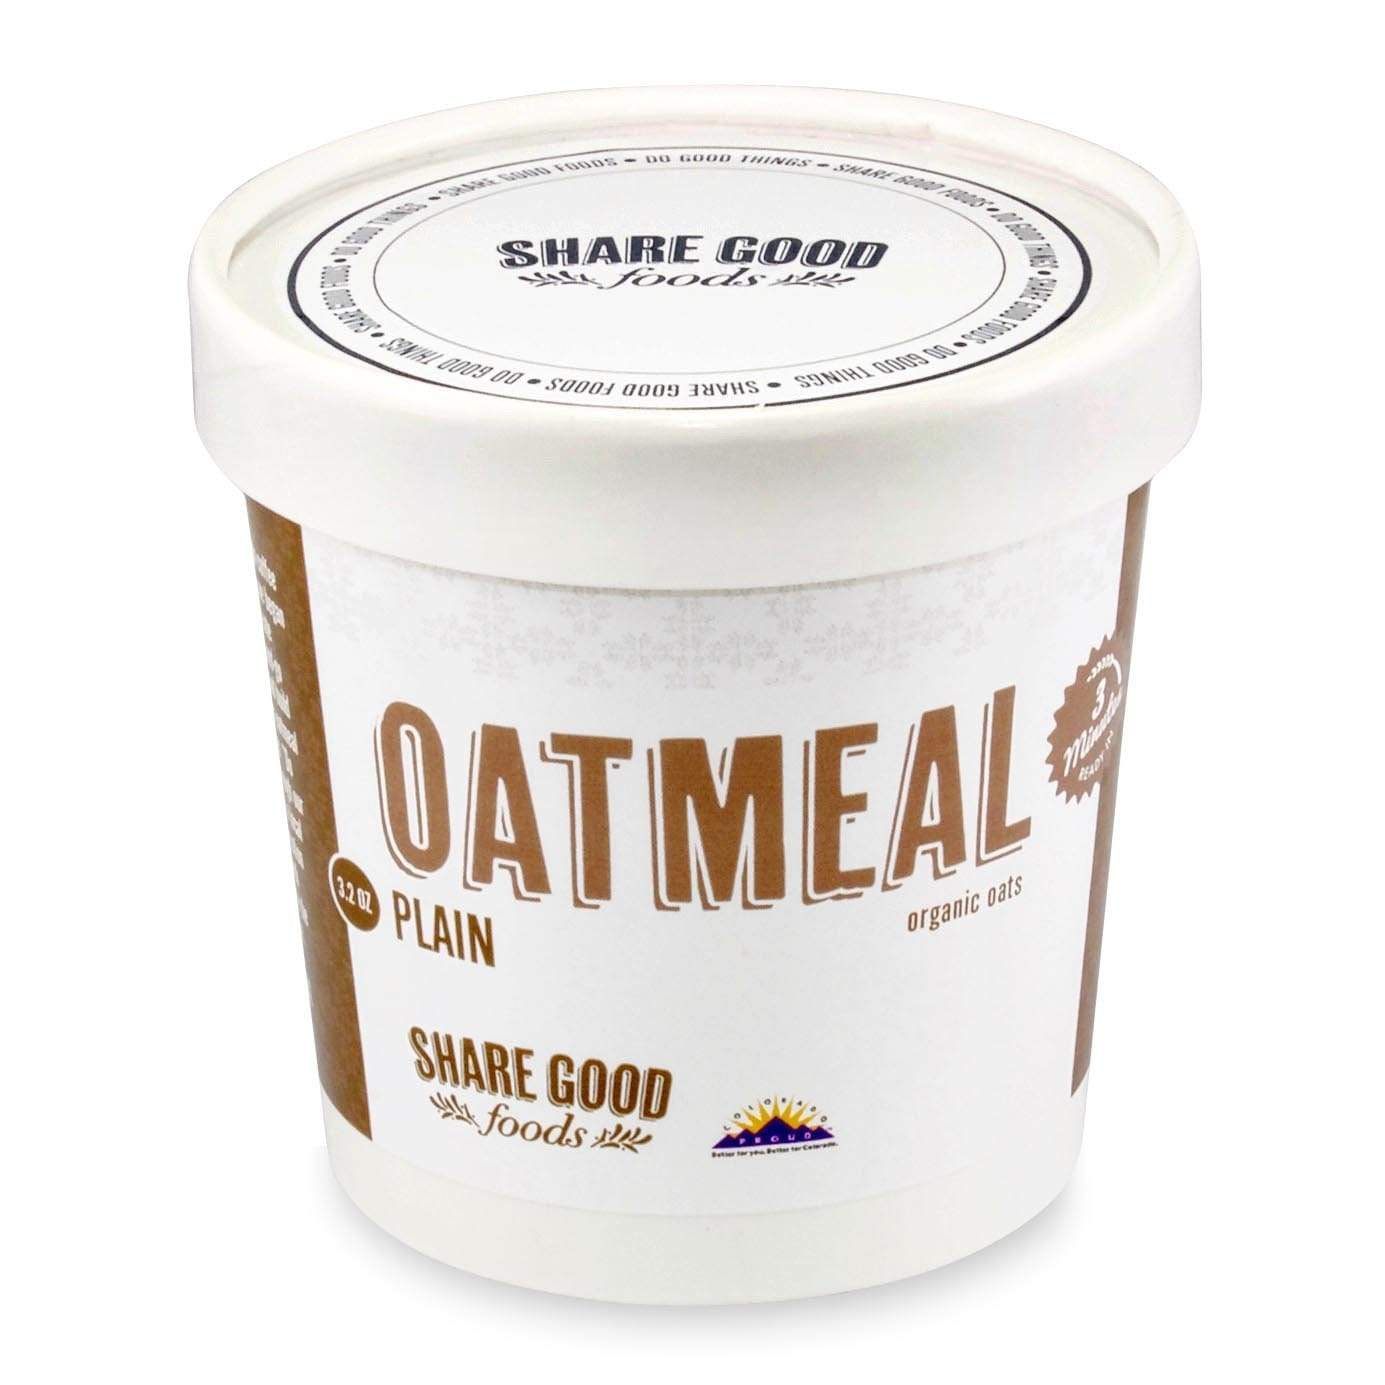 Share Good Foods Oatmeal Cups - Plain Breakfast